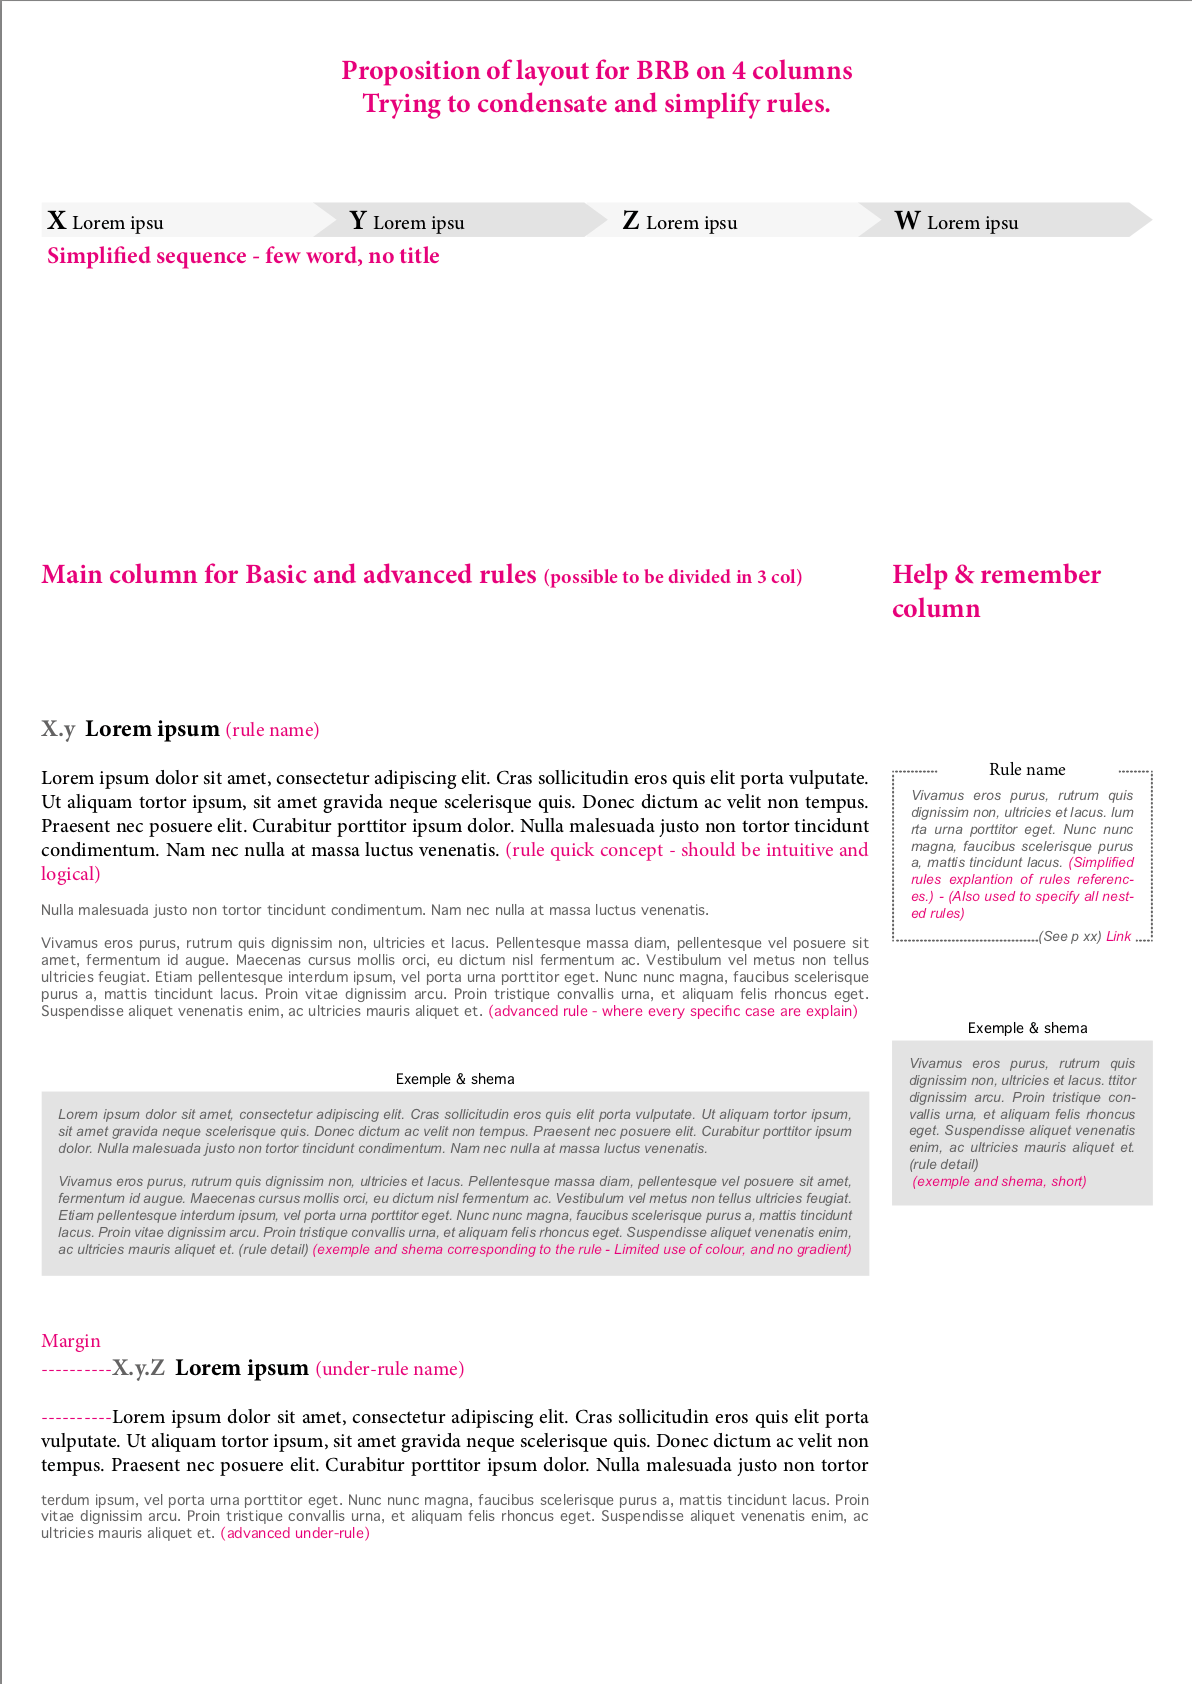 BRB layout multiple level of readability - explanation